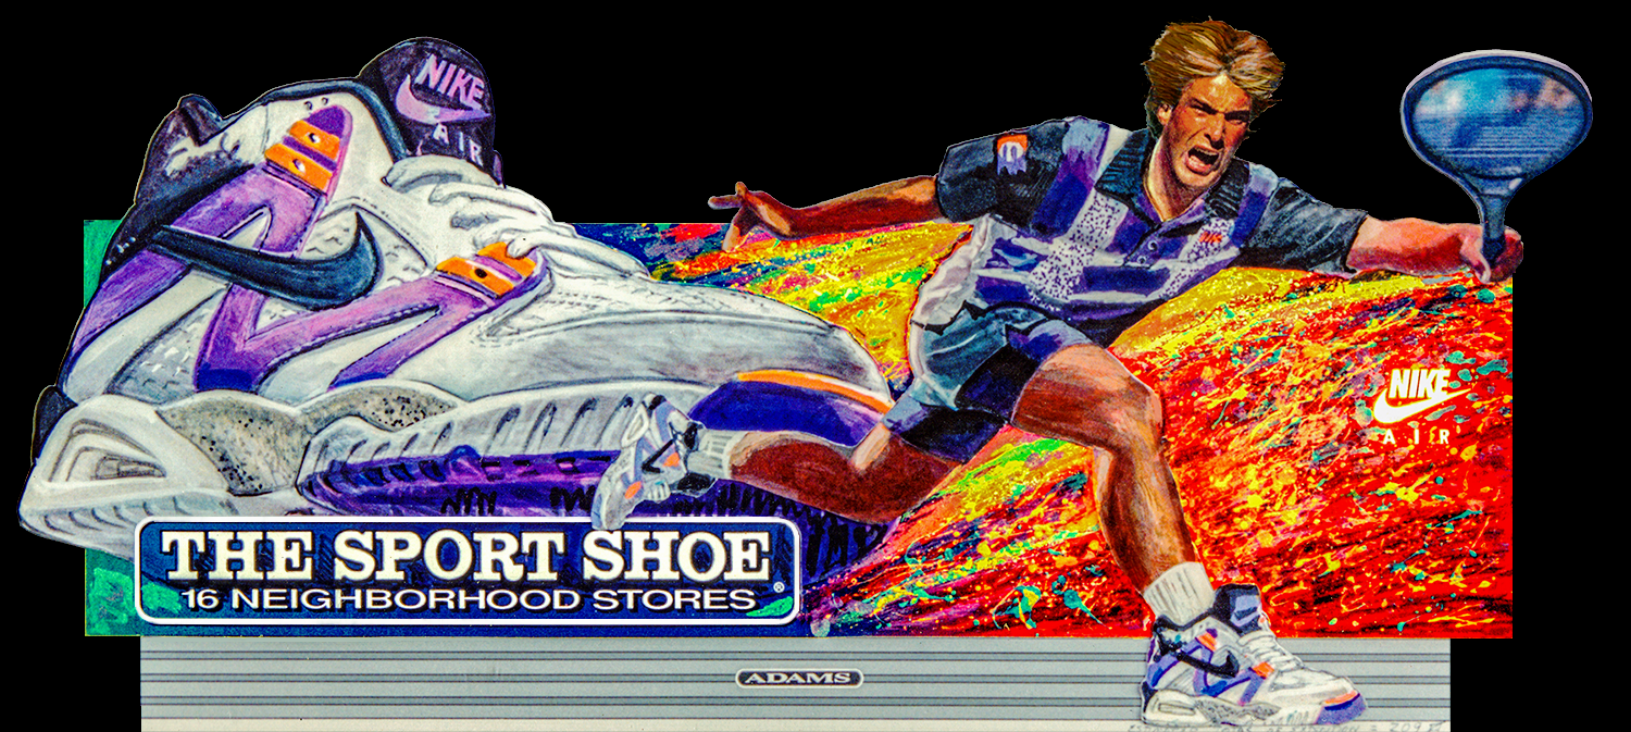 """Outdoor Advertising- """"Nike, Tennis"""" • The Sports Shoe. Designed & Illustrated this 14' by 48' billboard. © KT"""